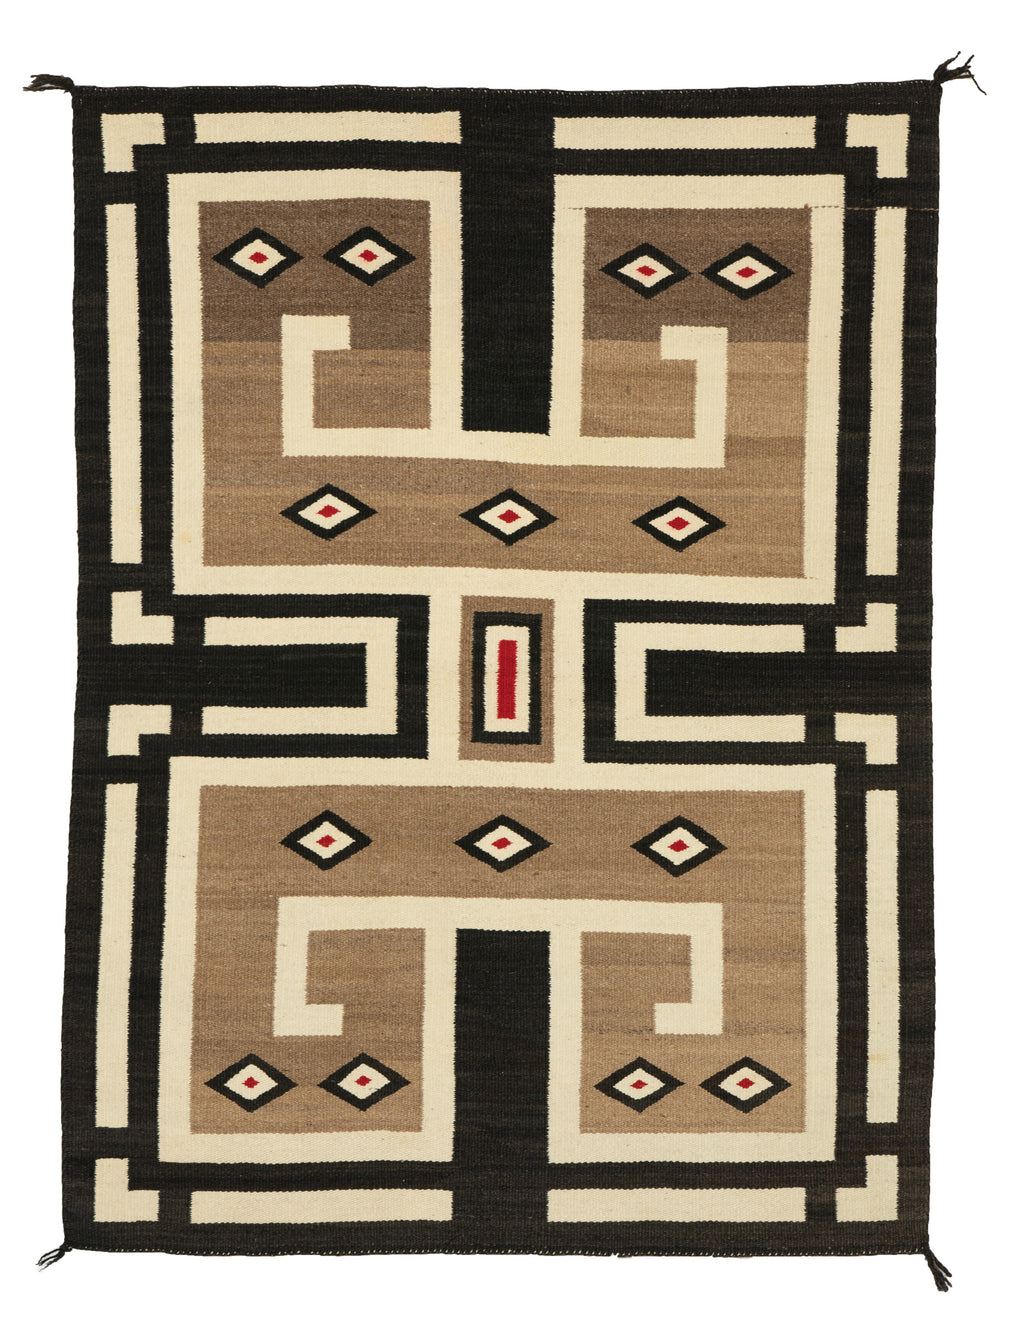 Navajo Double Saddle Blanket : Historic : PC 83 - Getzwiller's Nizhoni Ranch Gallery